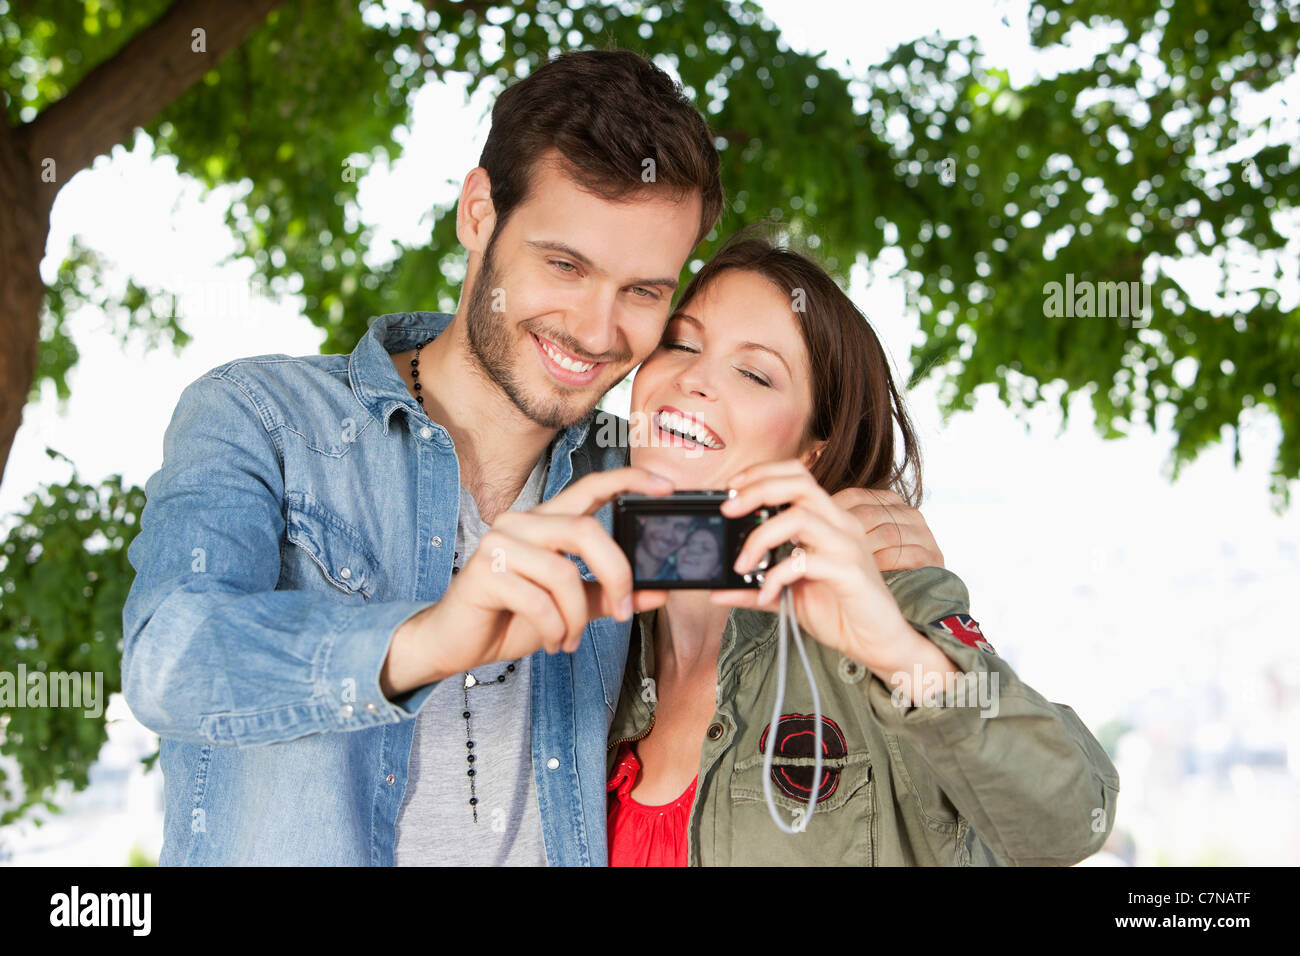 Couple taking a picture of themselves with a digital camera, Paris, Ile-de-France, France - Stock Image